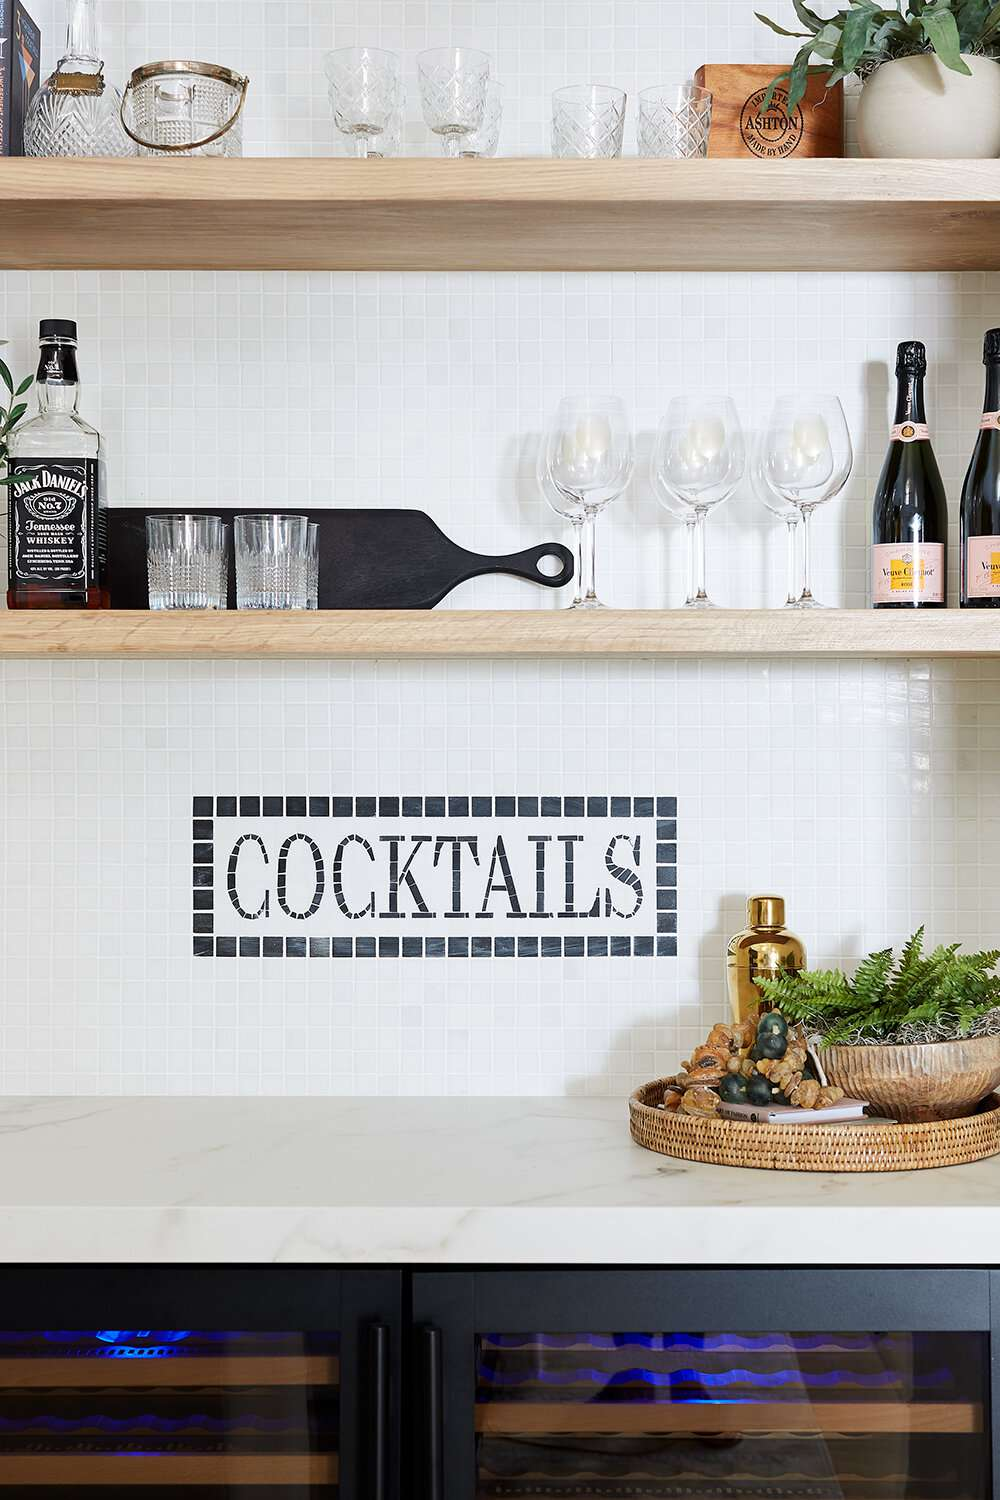 A wet bar backsplash which boasts a mosaic spelling out the word